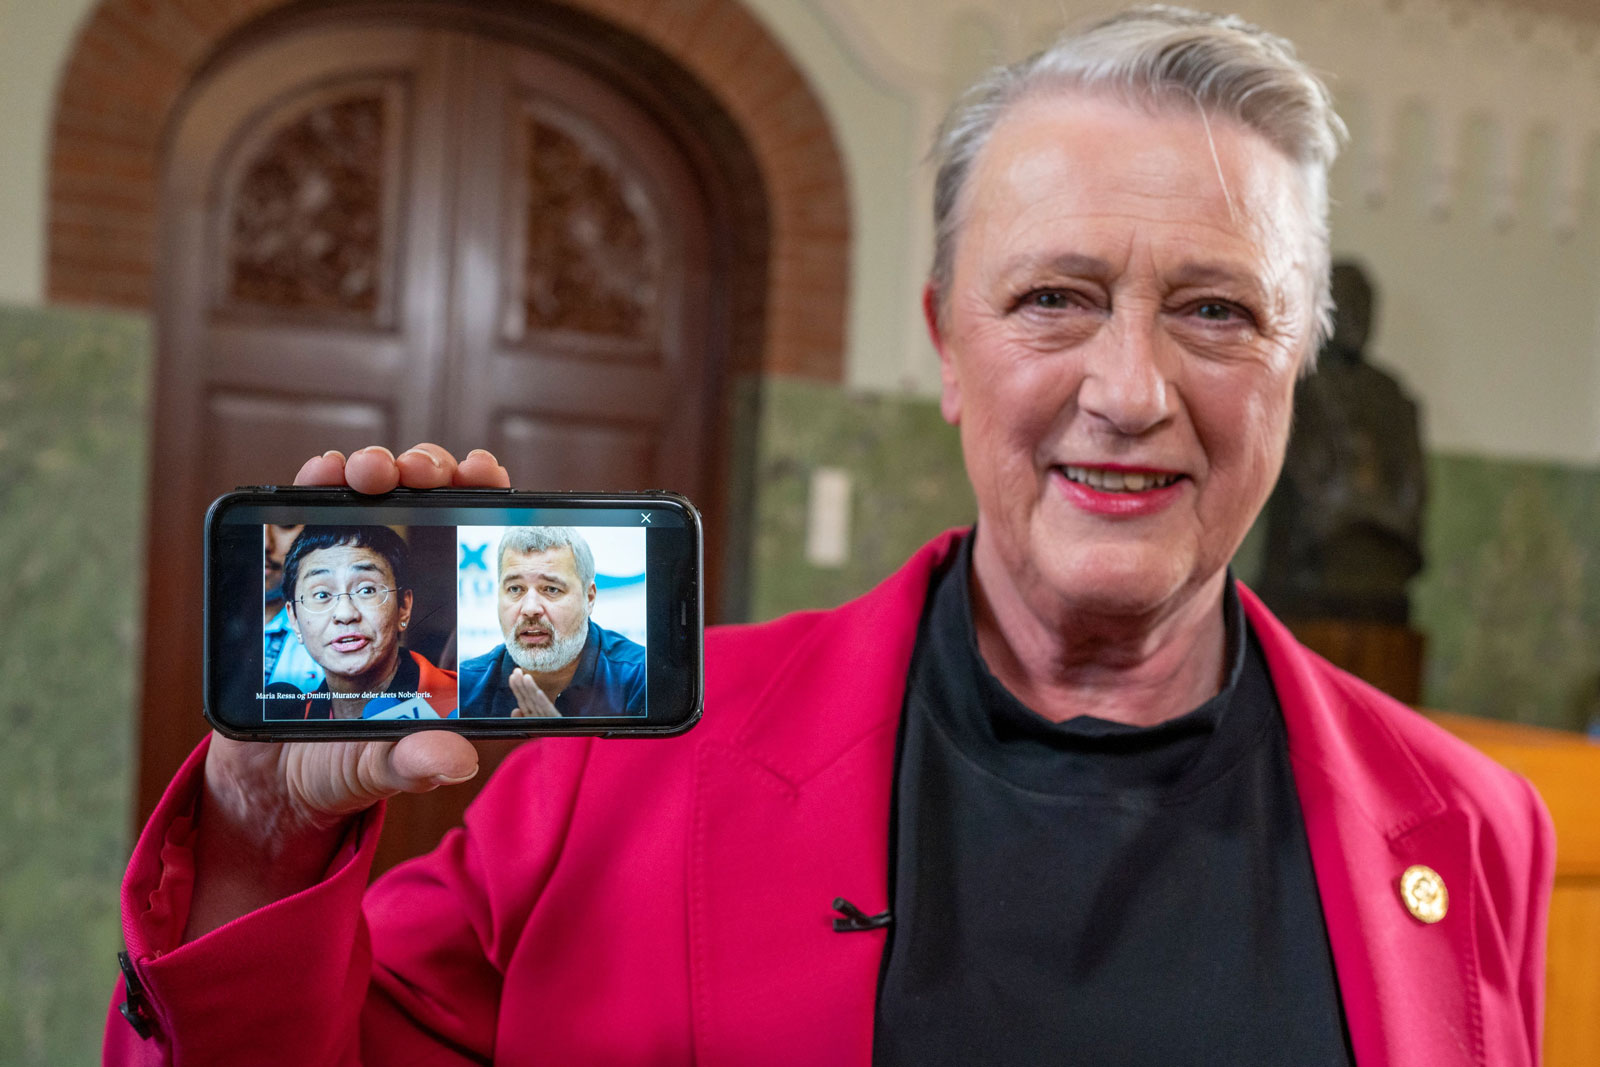 Berit Reiss-Andersen, chair of the Nobel Peace Prize Committee, presents a mobile phone displaying photos of journalists Maria Ressa and Dmitry Muratov following a press conference to announce the winners of the 2021 Nobel Peace Prize.